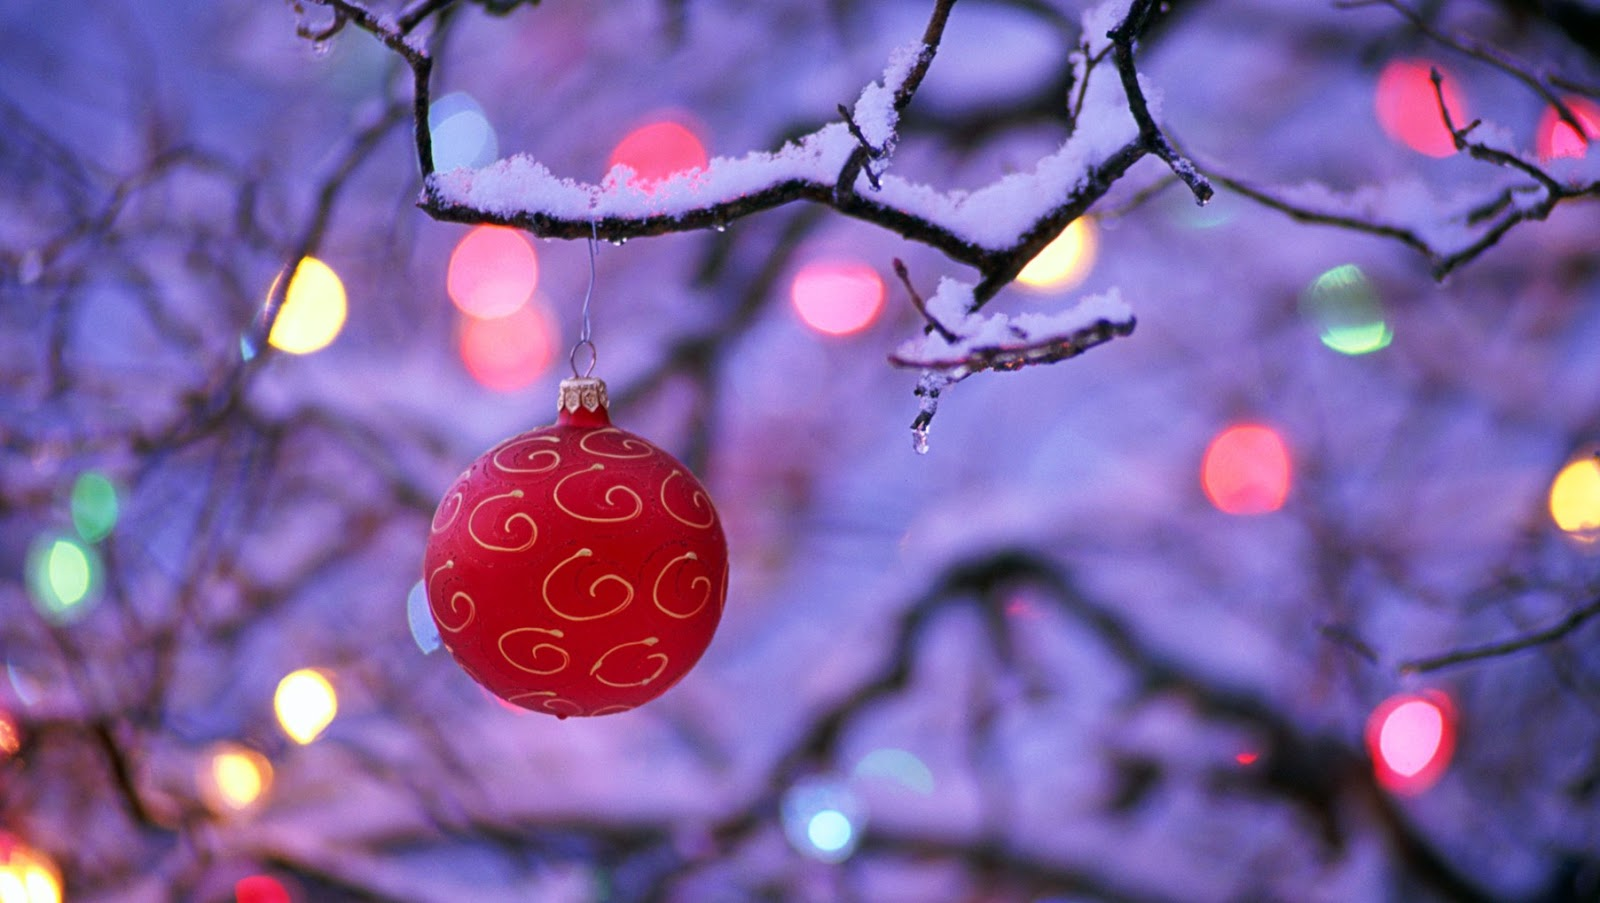 Free Download Hd Wallpapers Laptop Windows 10 Christmas